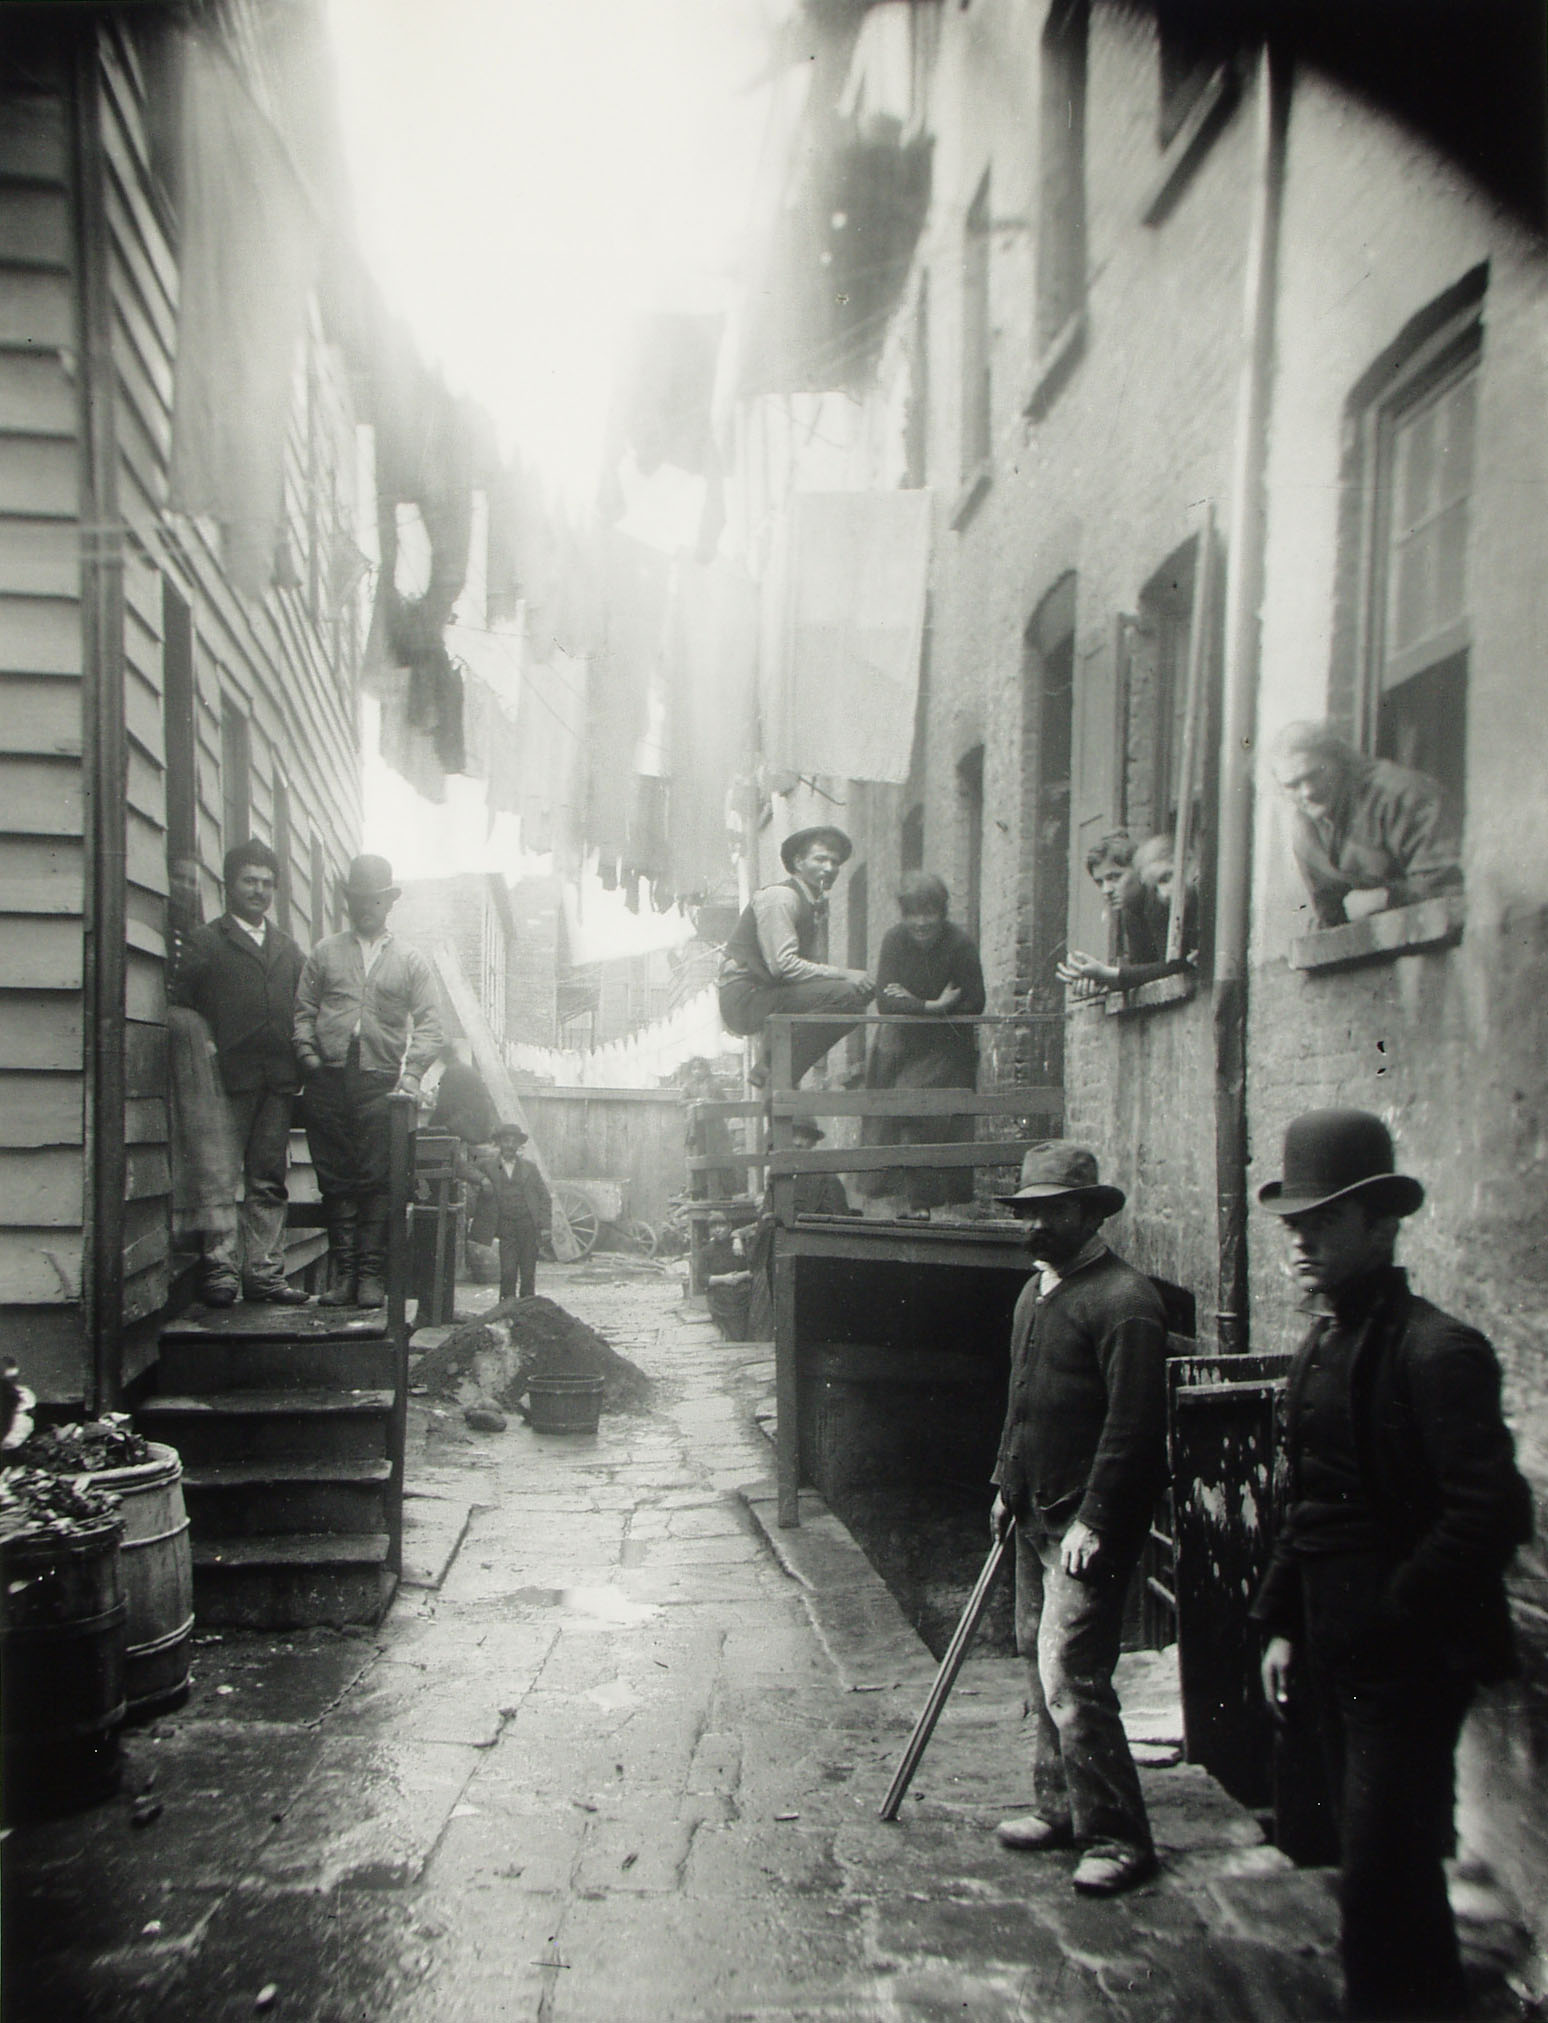 Image:Bandit's Roost by Jacob Riis.jpeg